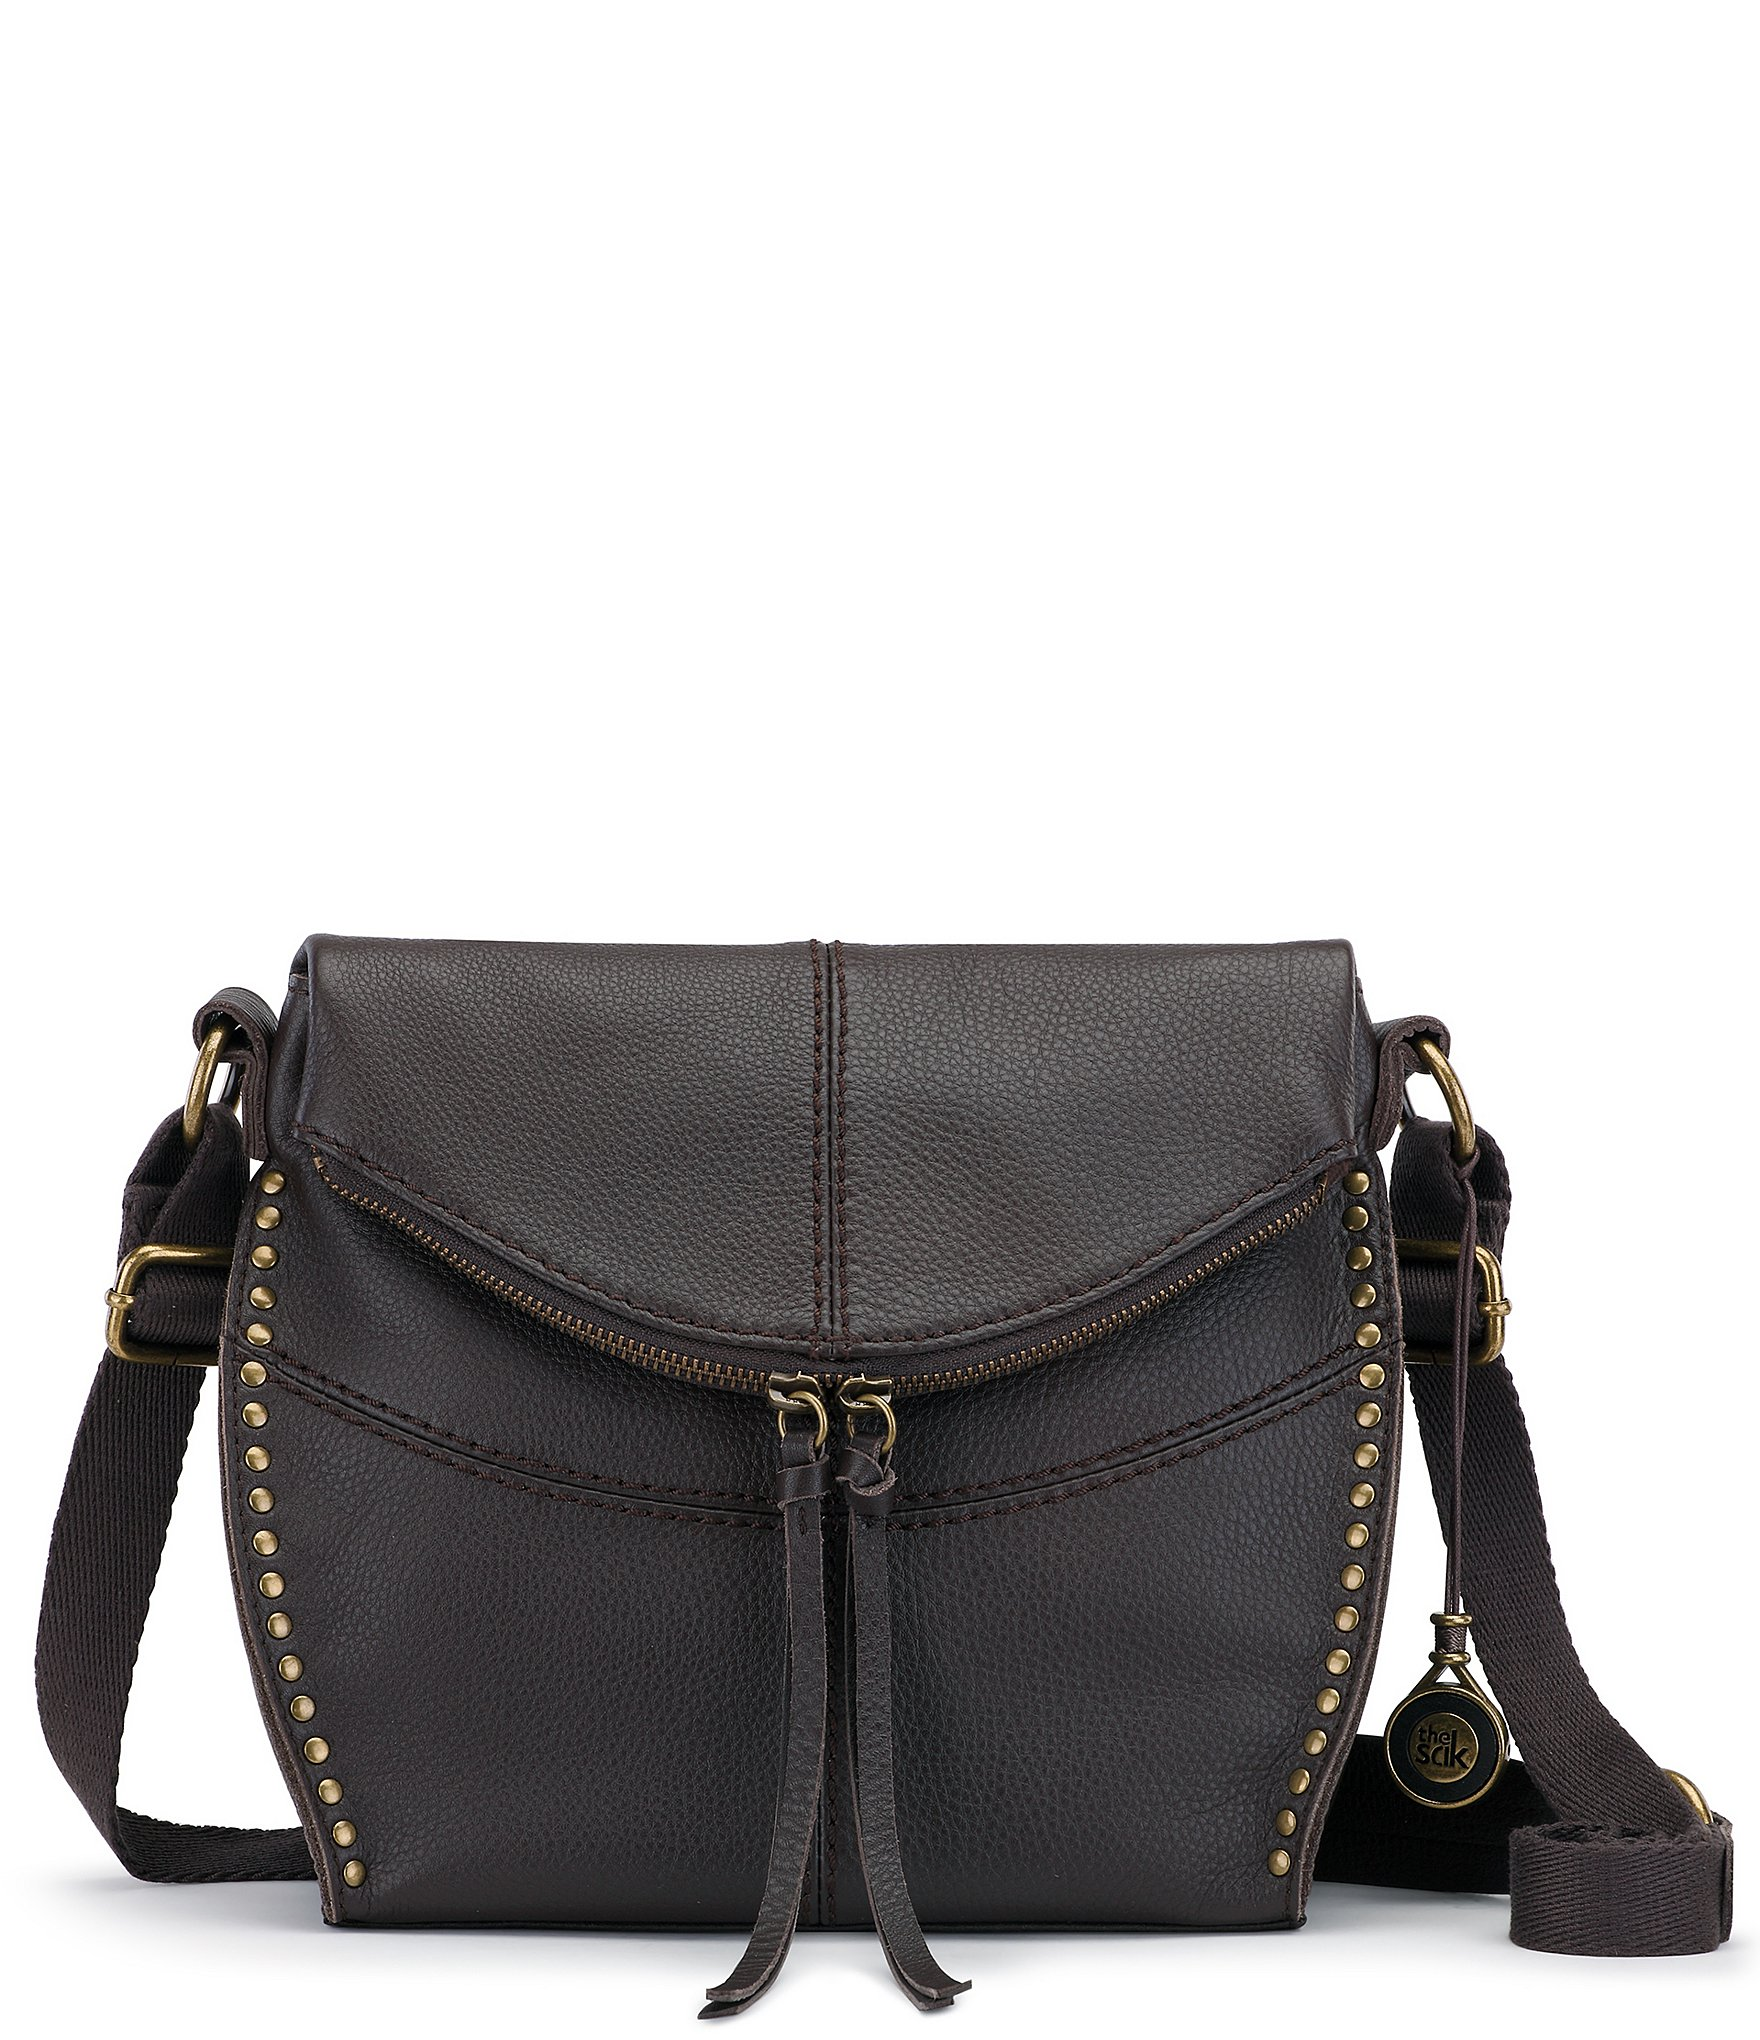 Handbags. When you're in search of a great selection of all handbags from your favorite brands and designers, it's important to find one that fits you and your lifestyle.